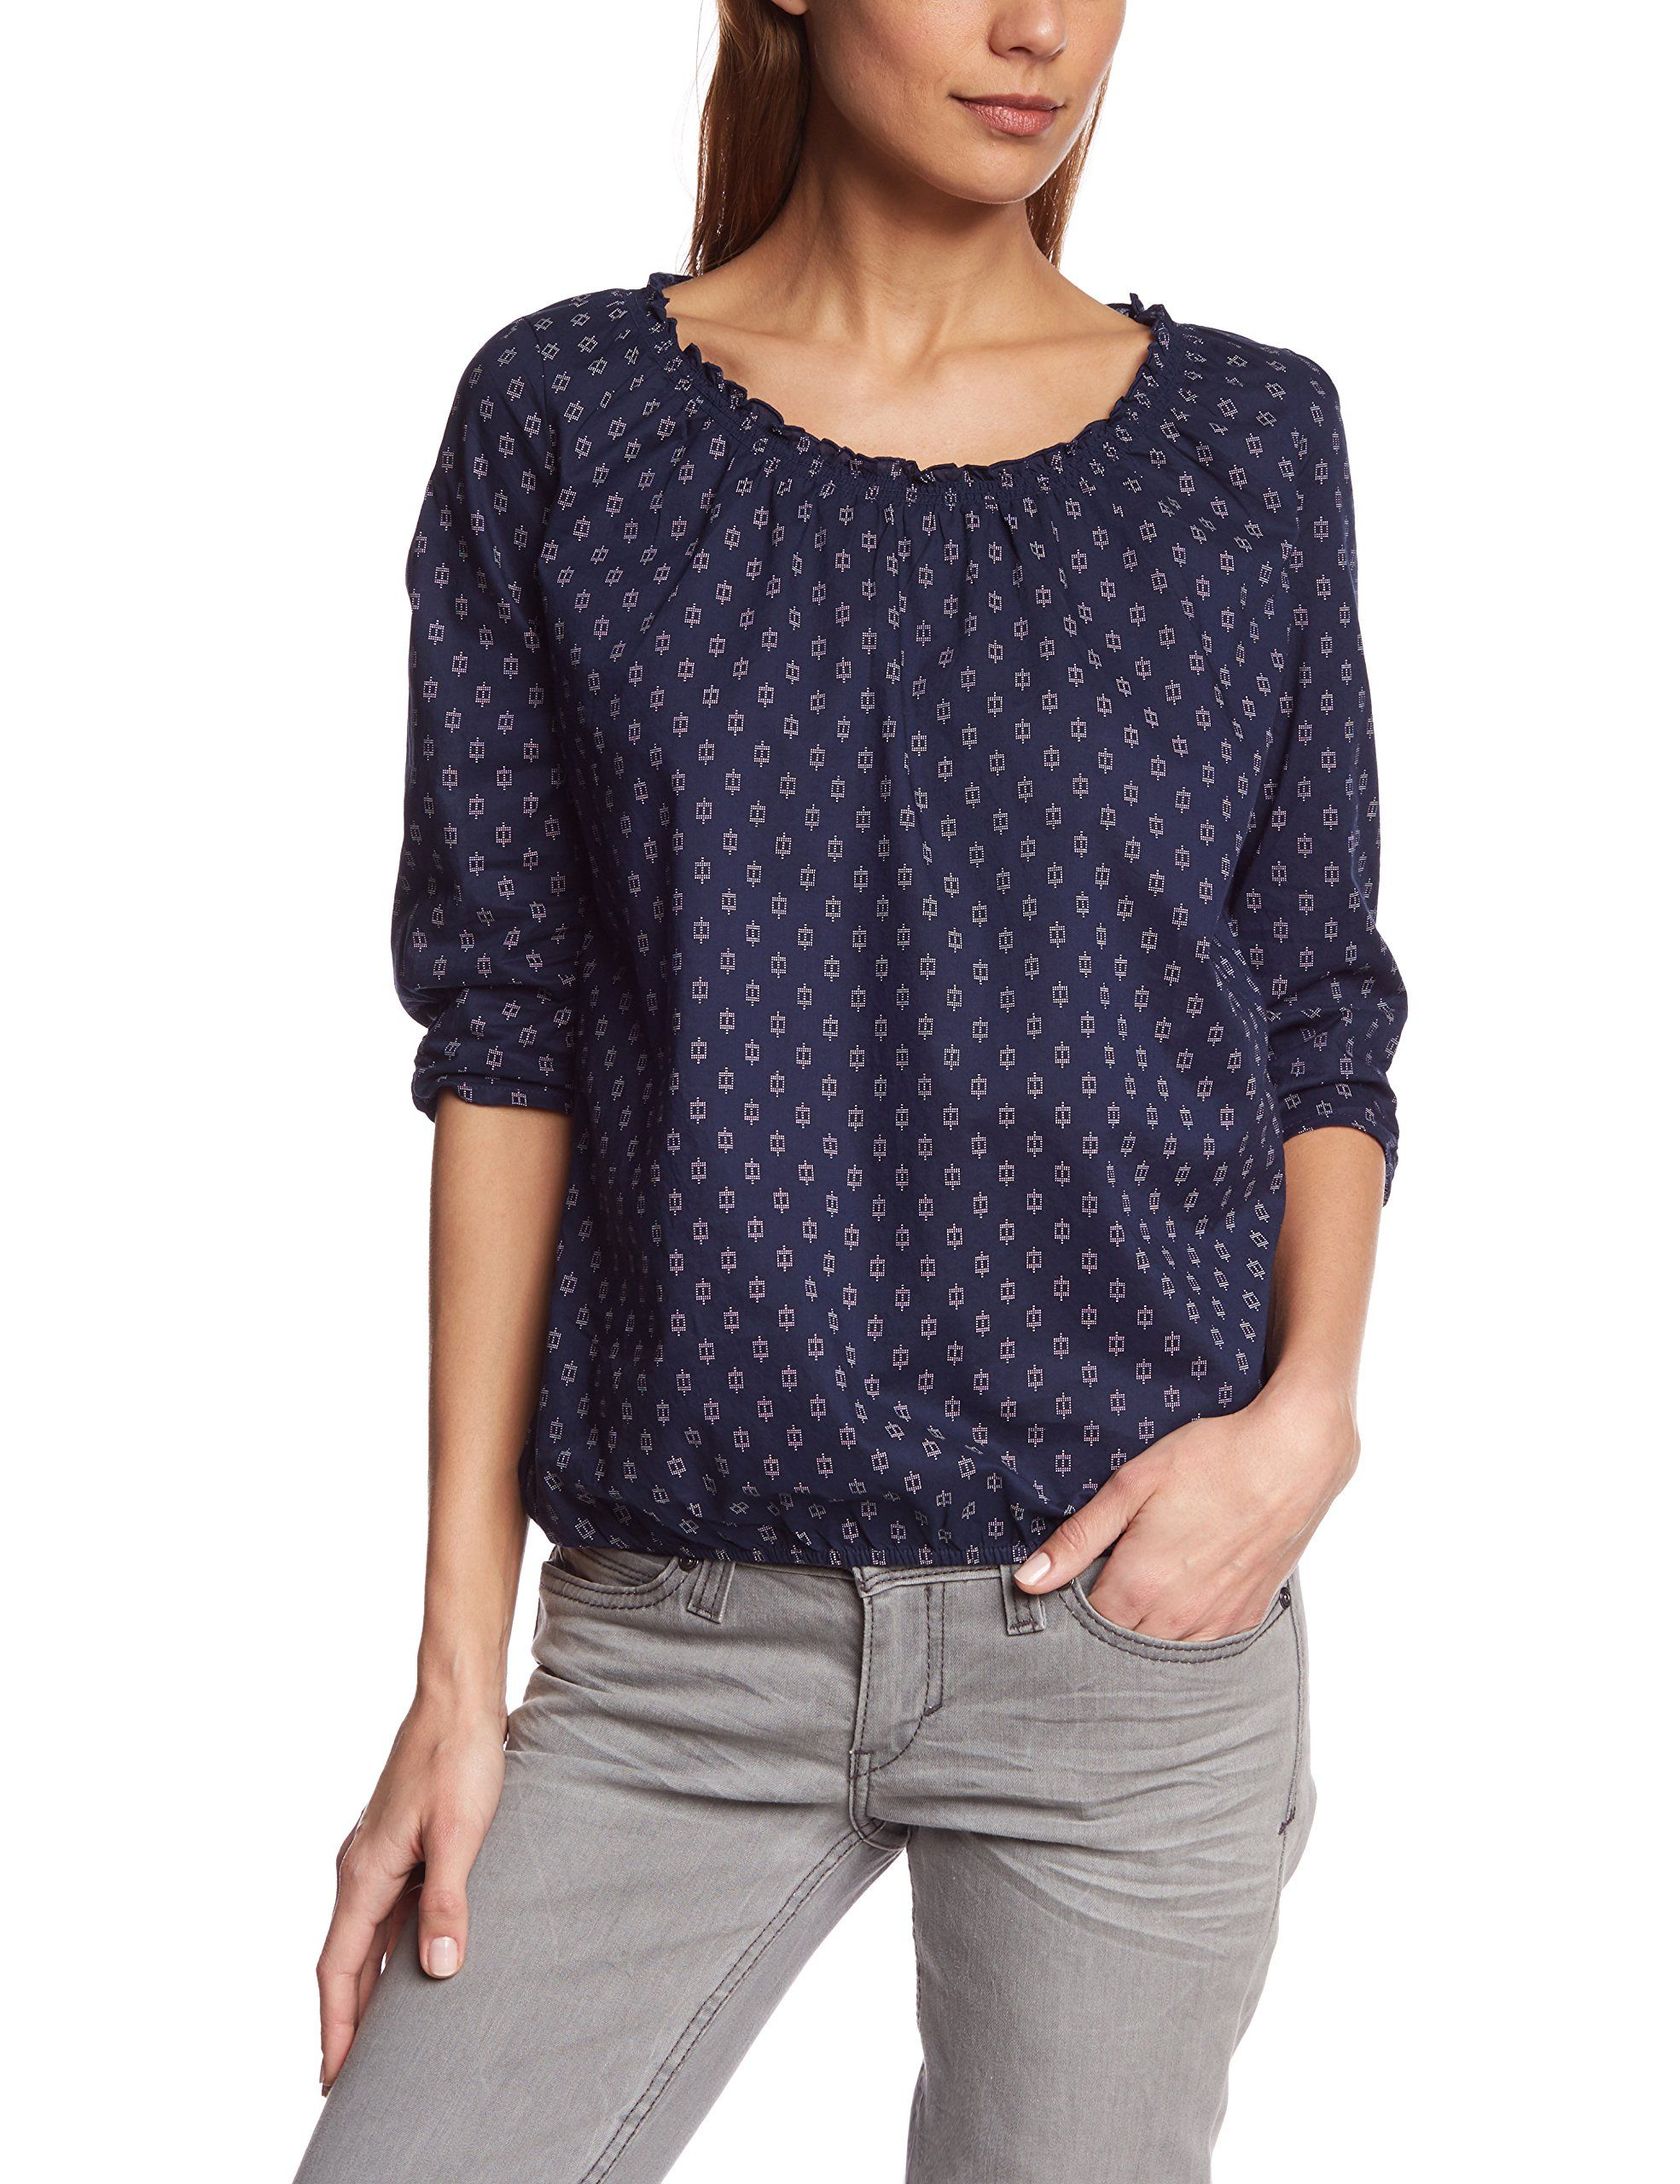 Up To Date Discount Low Price Fee Shipping Womens Pattern Long Sleeve Jumper EDC by Esprit Footaction Online Outlet Low Shipping Fee DJxnwq1Gv